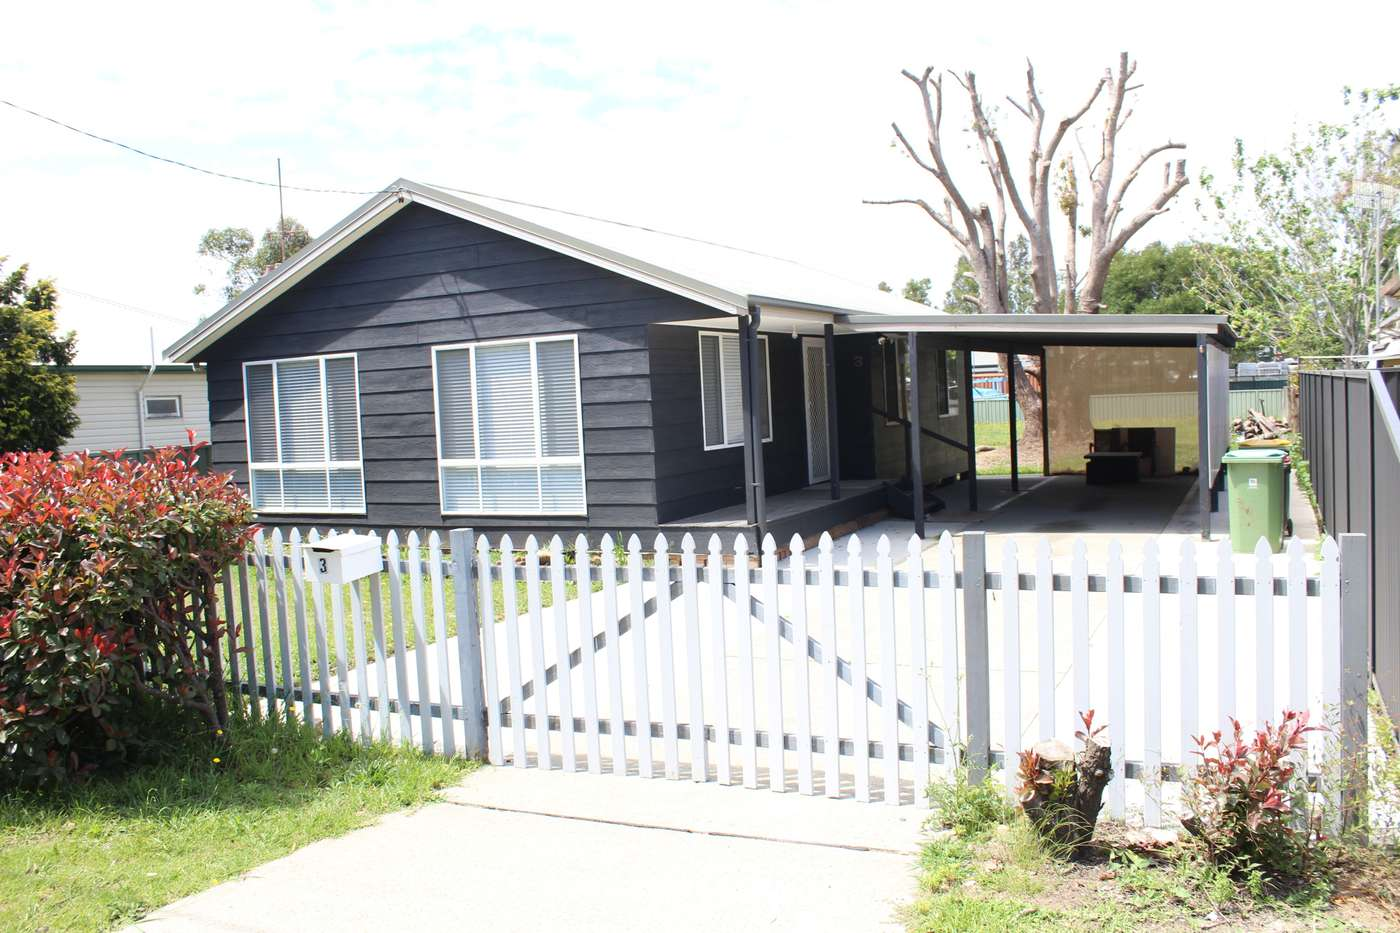 Main view of Homely house listing, 3 Lake Road, Tuggerah, NSW 2259